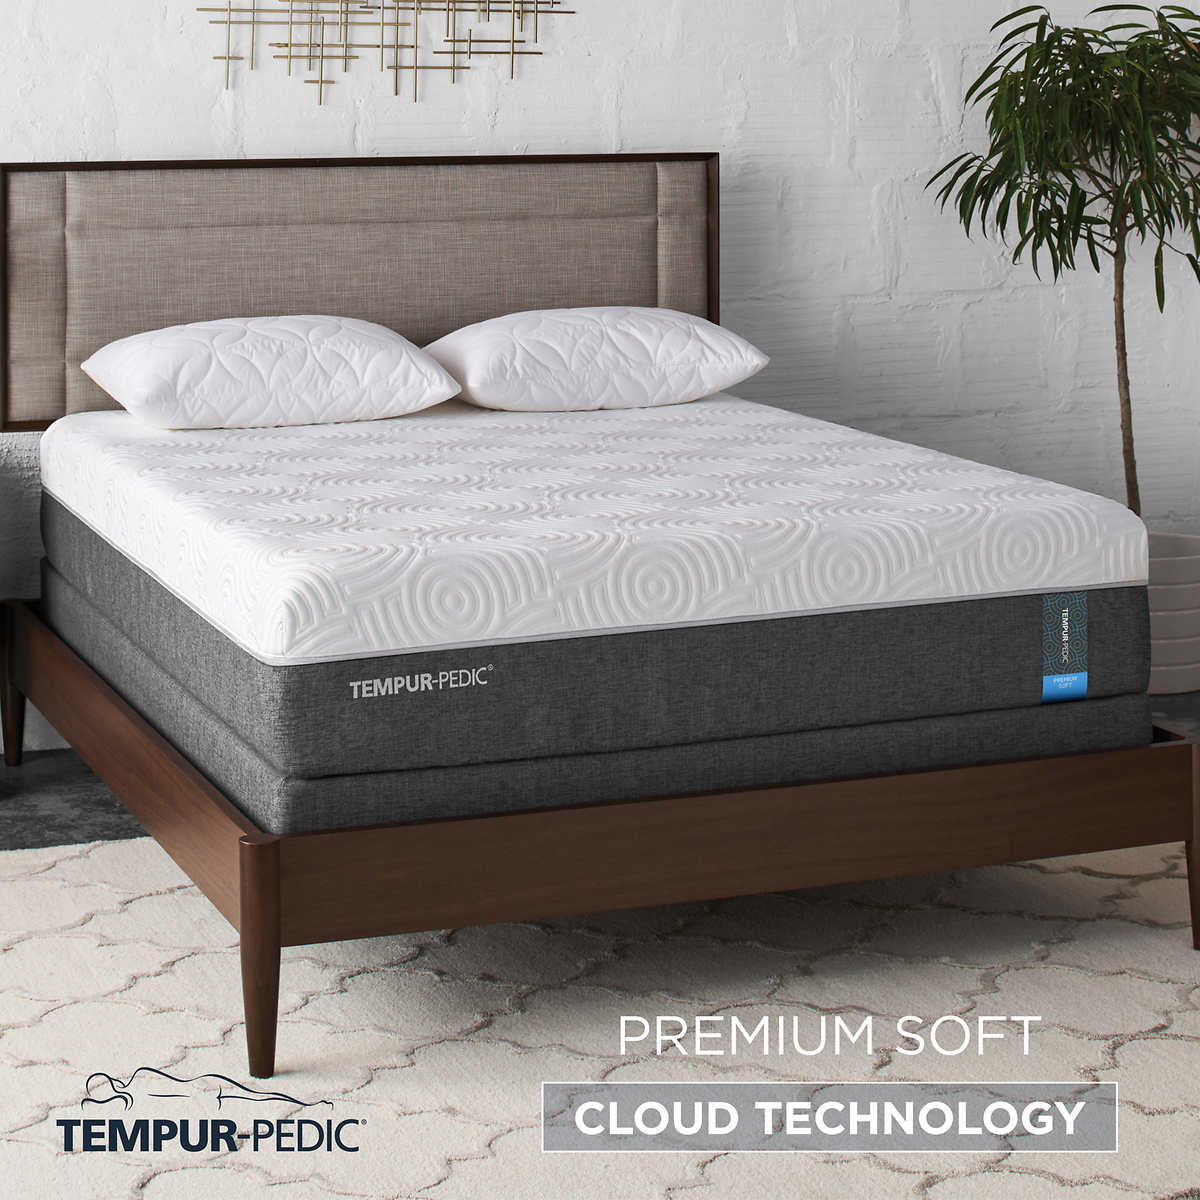 Tempur Pedic Premium Soft 12 King Mattress Only